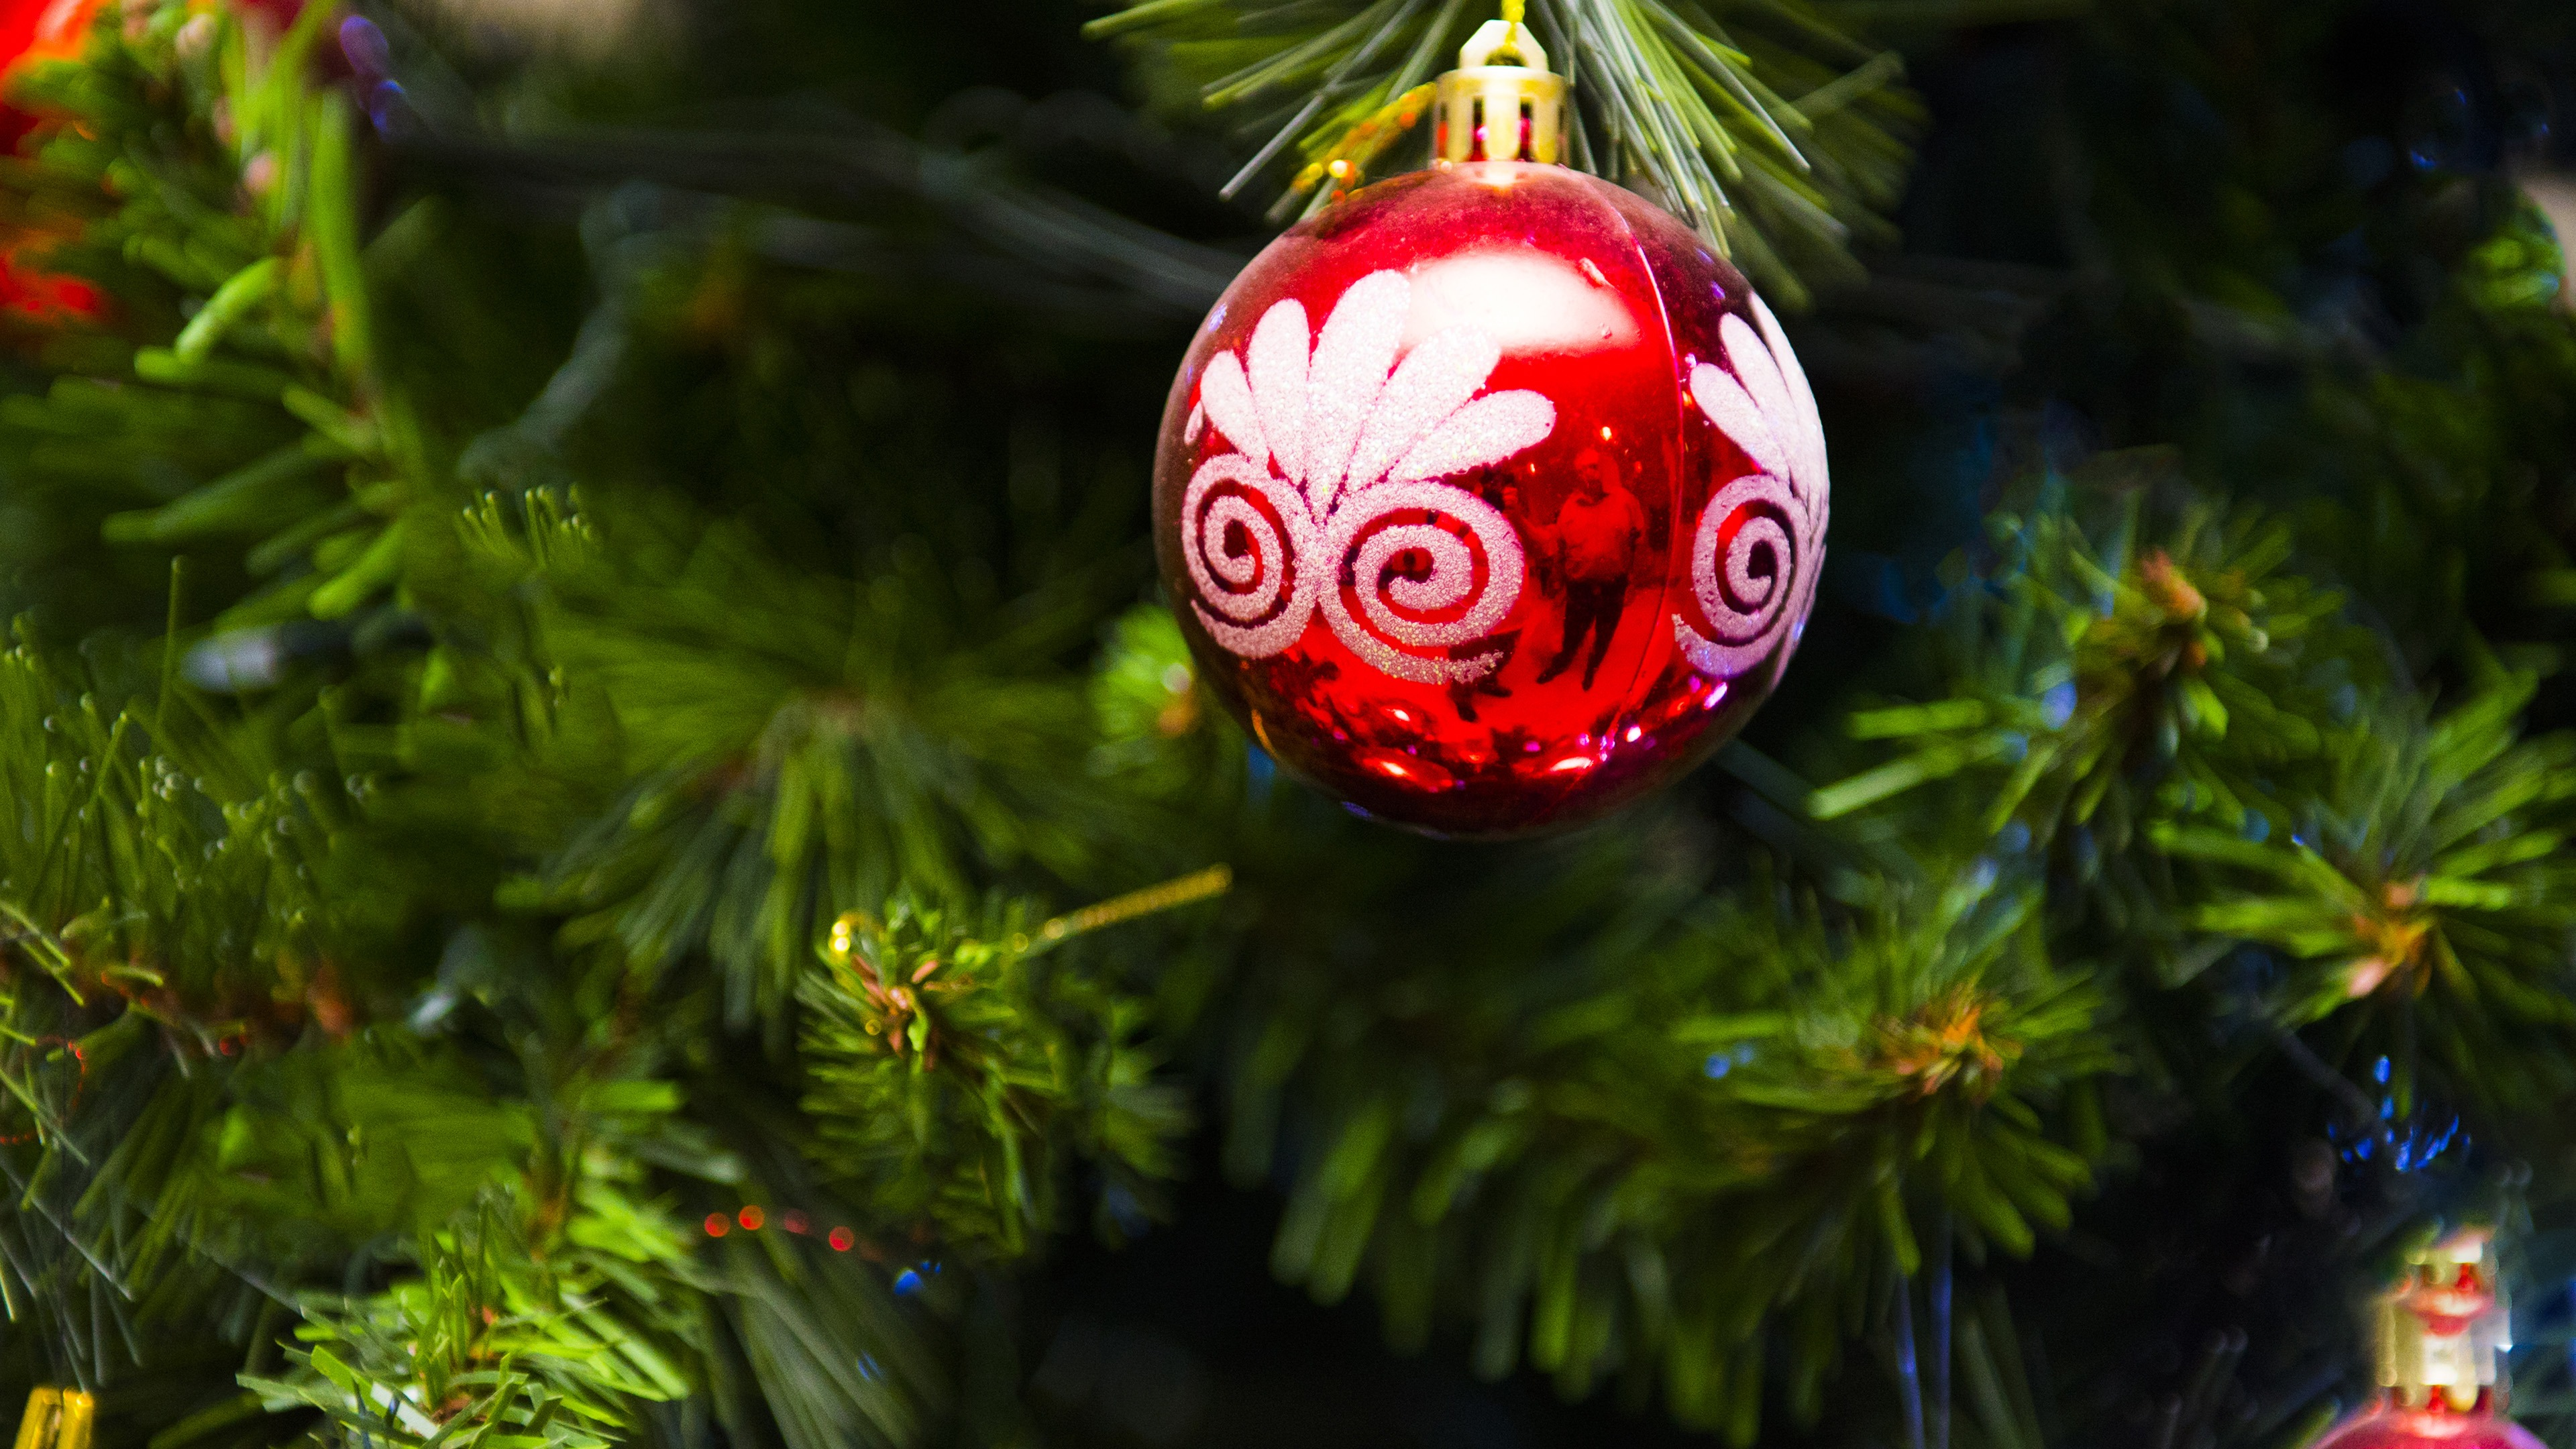 Christmas Tree Decoration Red Ball 4k Background Hd